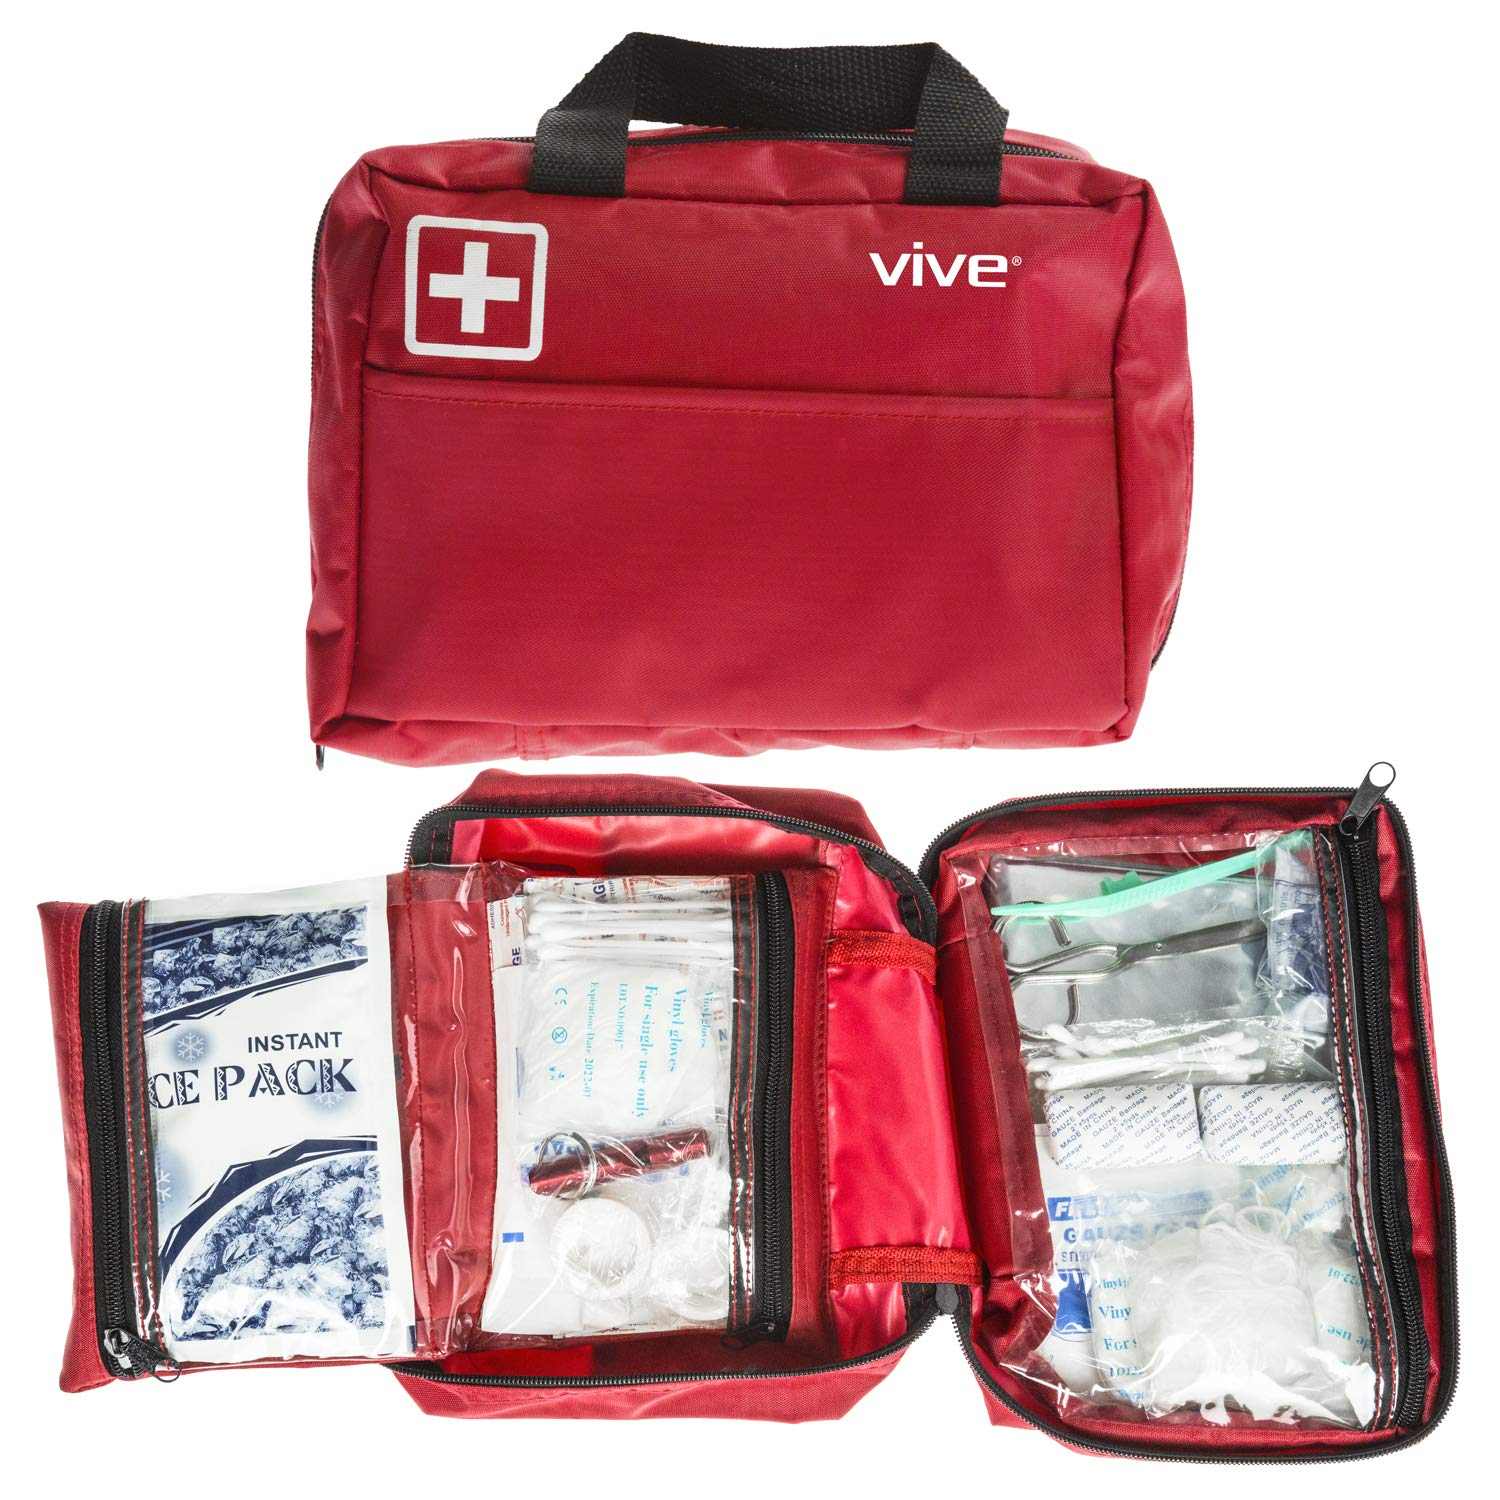 Vive First Aid Kit (300 Piece) - Survival Trauma Pack for Hurricanes, Earthquake, Car and Home - Small EDC Gear for Vehicle, Auto Car and Camping - Emergency Medical Supply Safety Bag with Gauze, Tape by Vive